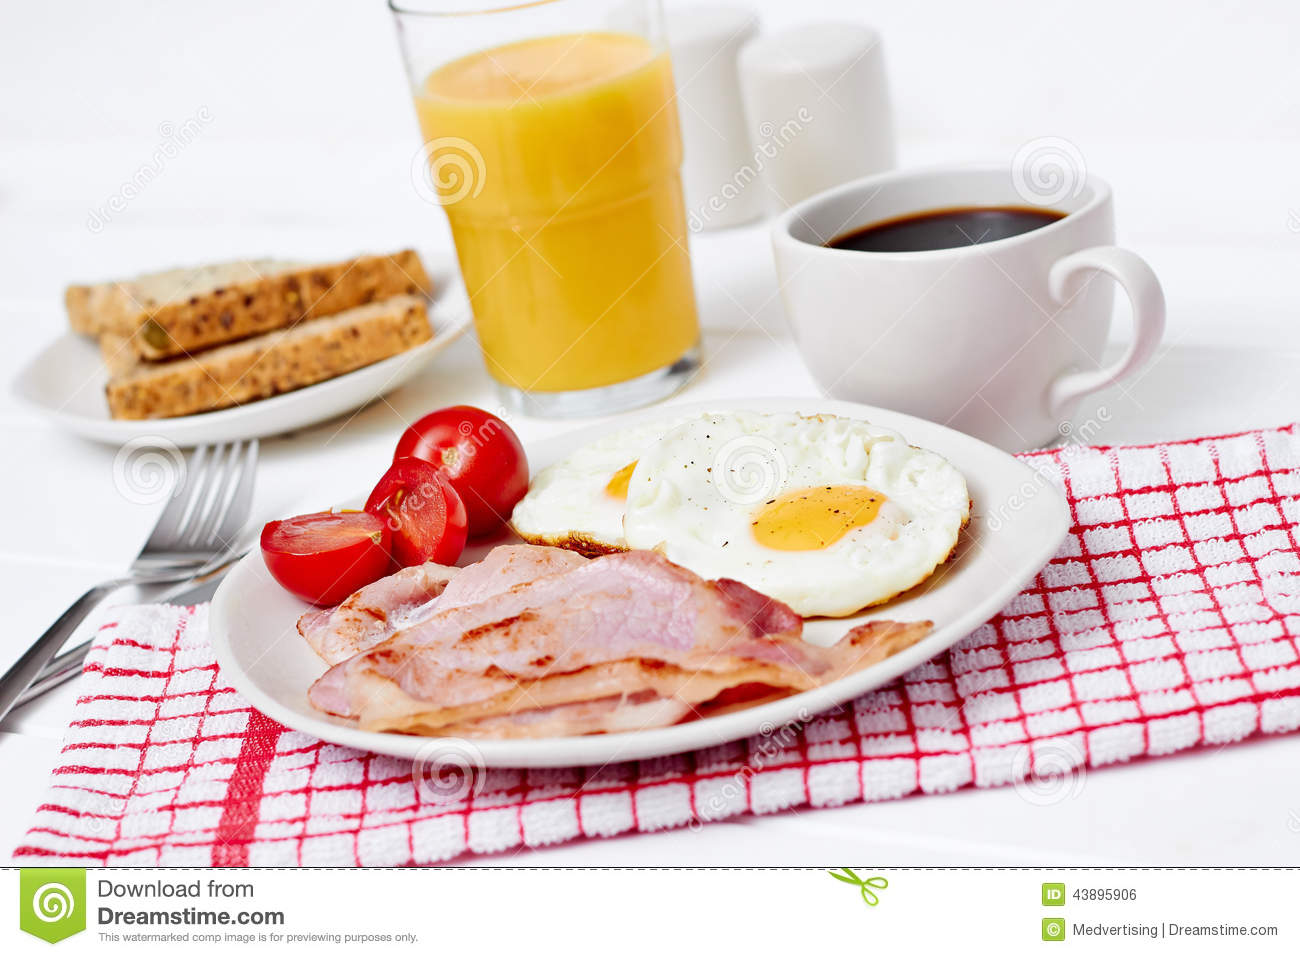 Breakfast With Fried Eggs And Bacon Stock Photo - Image: 43895906